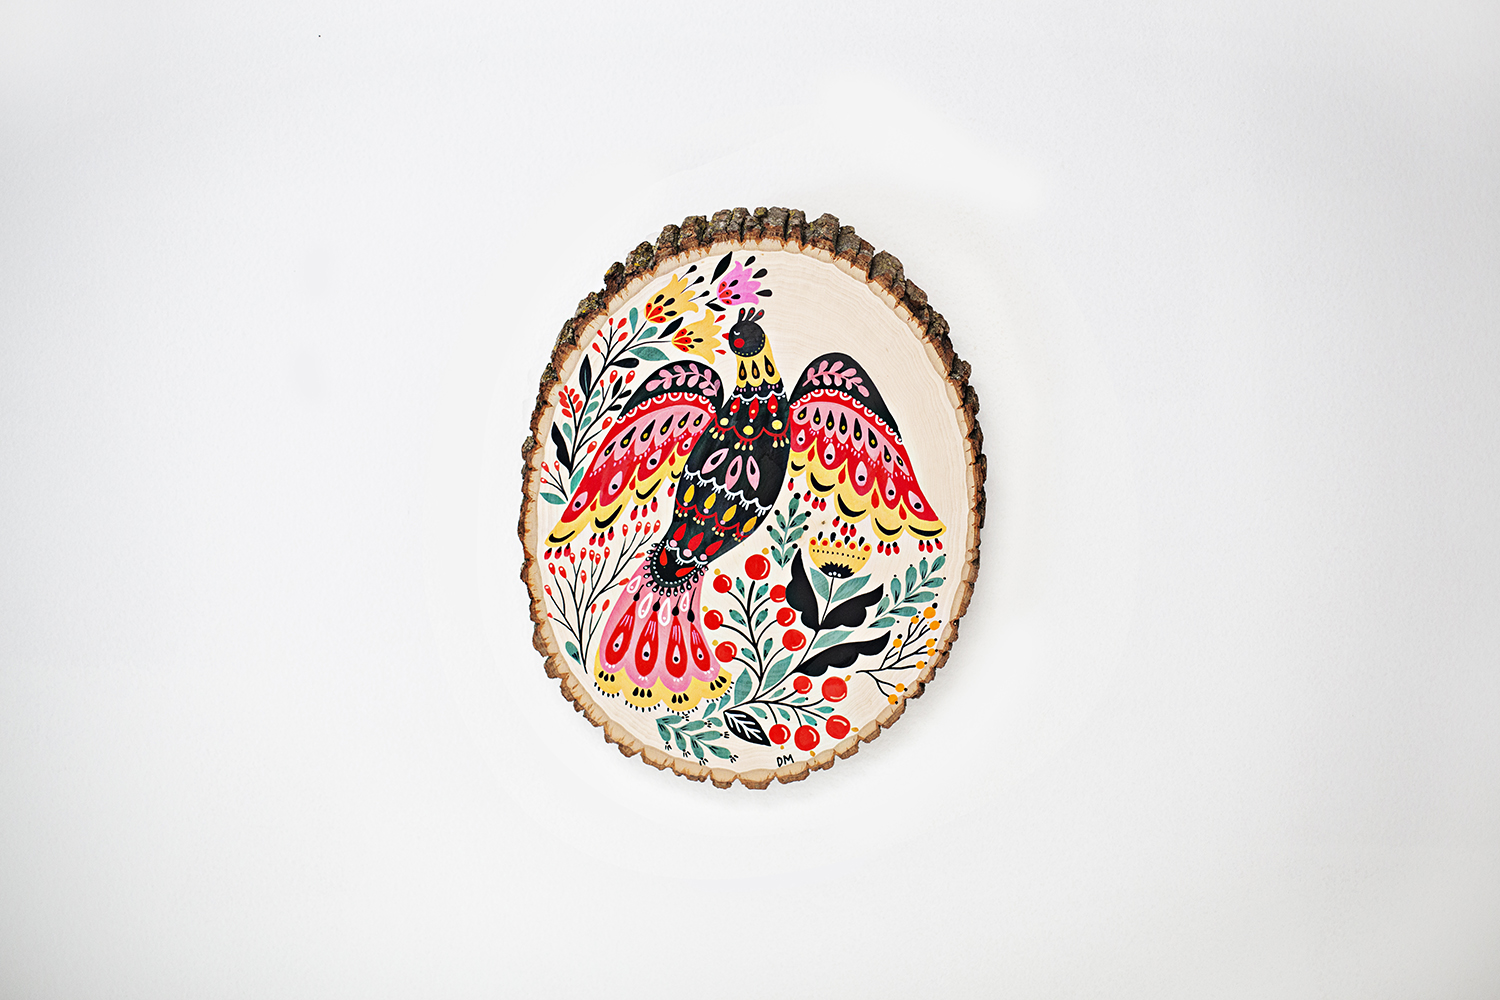 Dinara Mirtalipova Bird on Wood No3 B 72.jpg